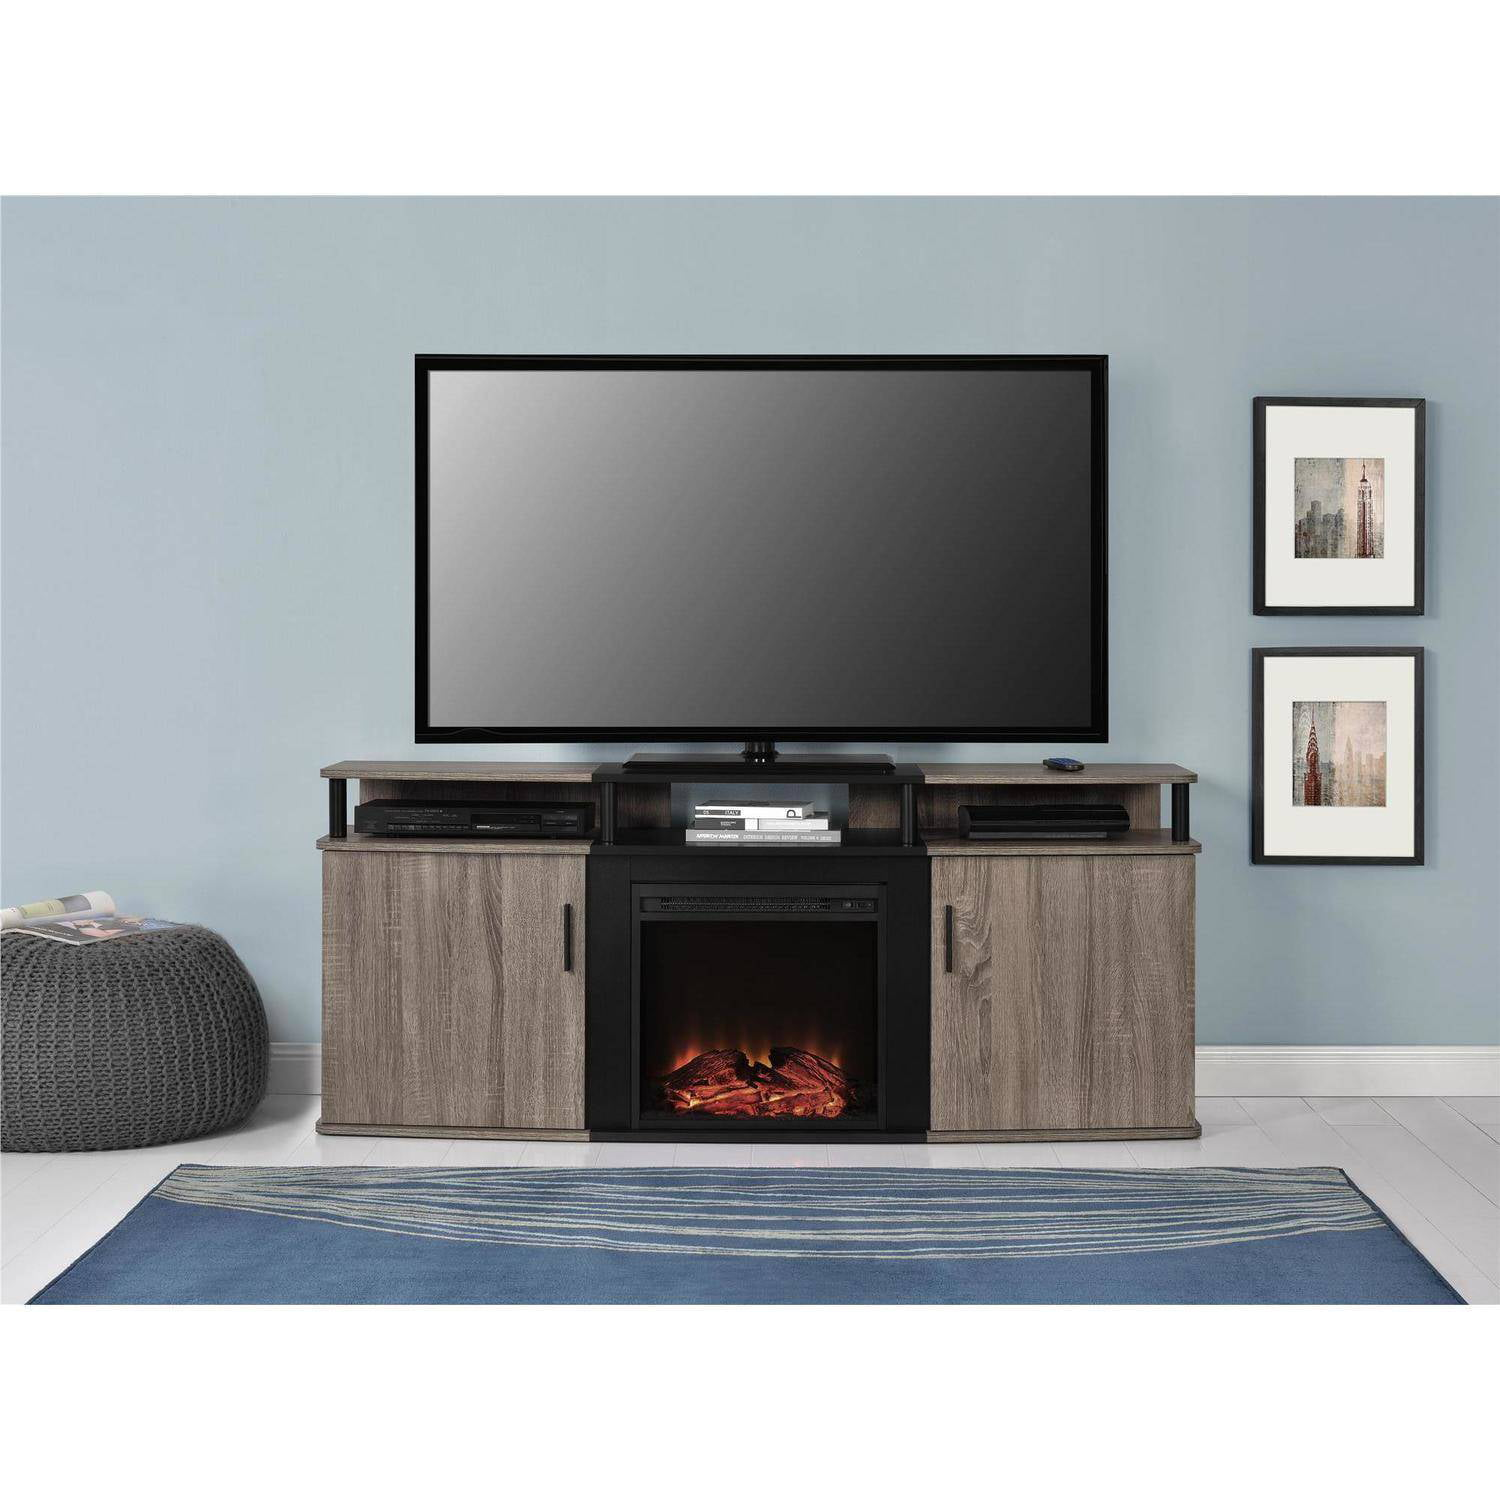 70 Inch Tv Stand Fireplace Media Console Organizer